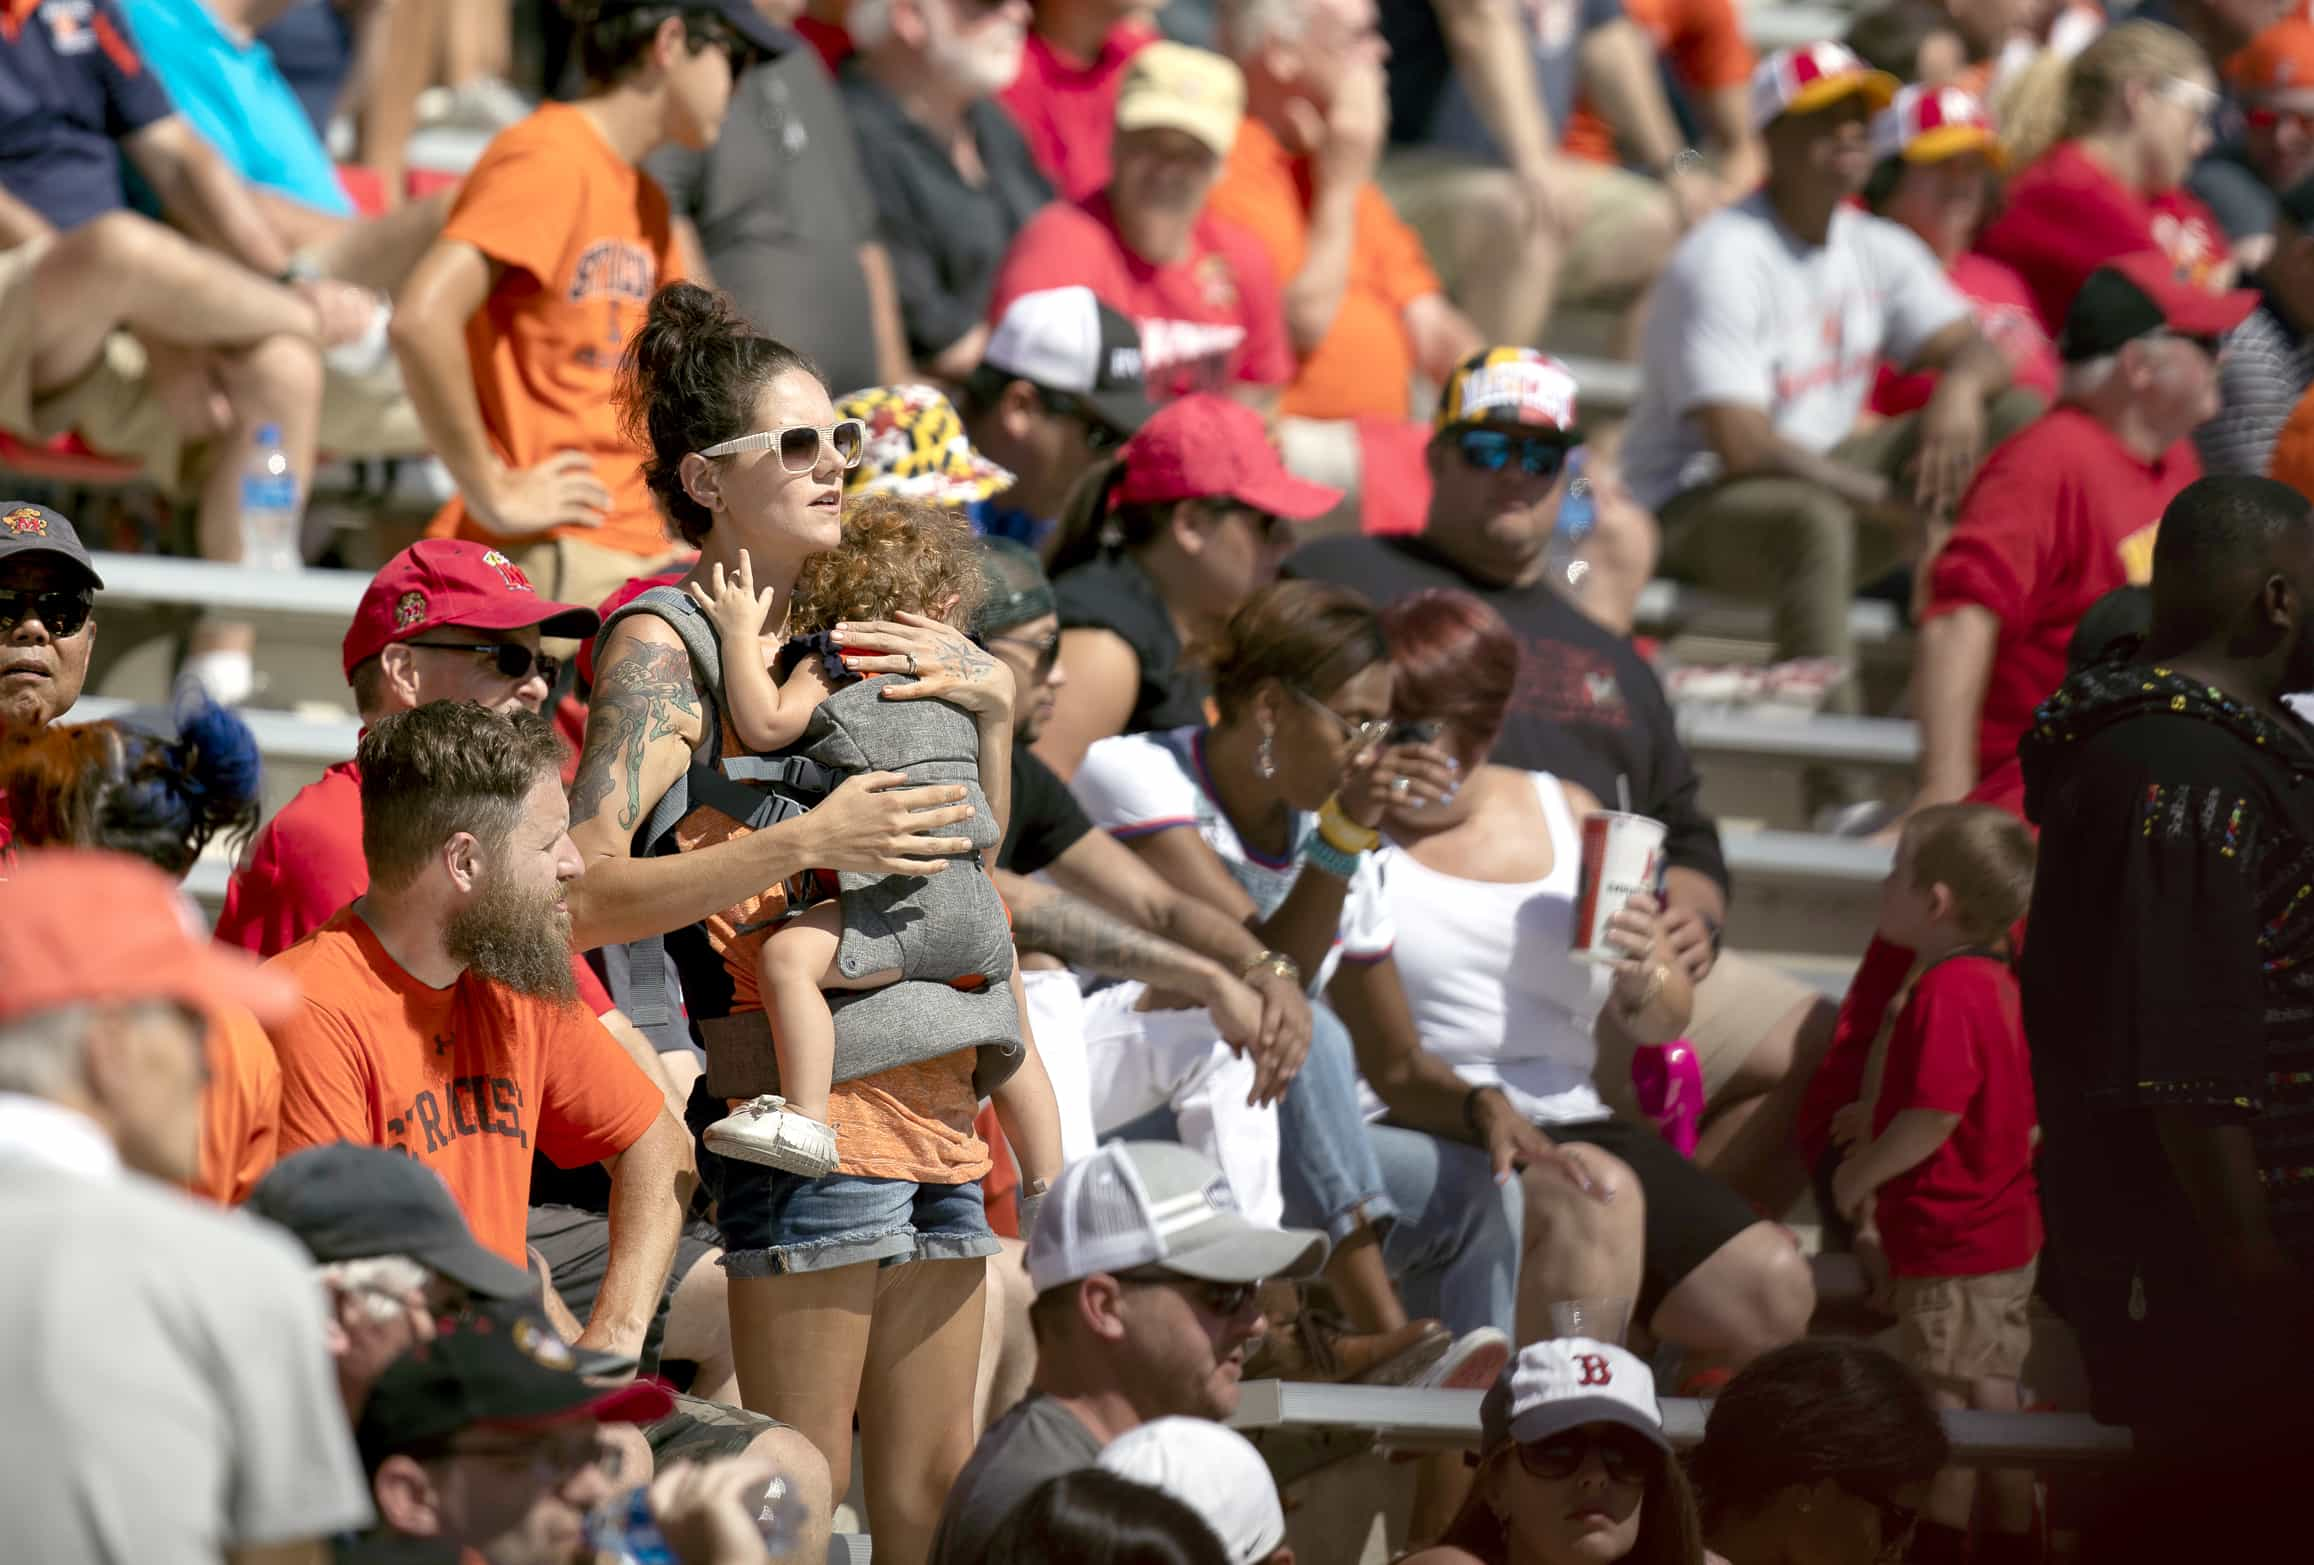 Syracuse fans had little to cheer for in the second half vs. Maryland